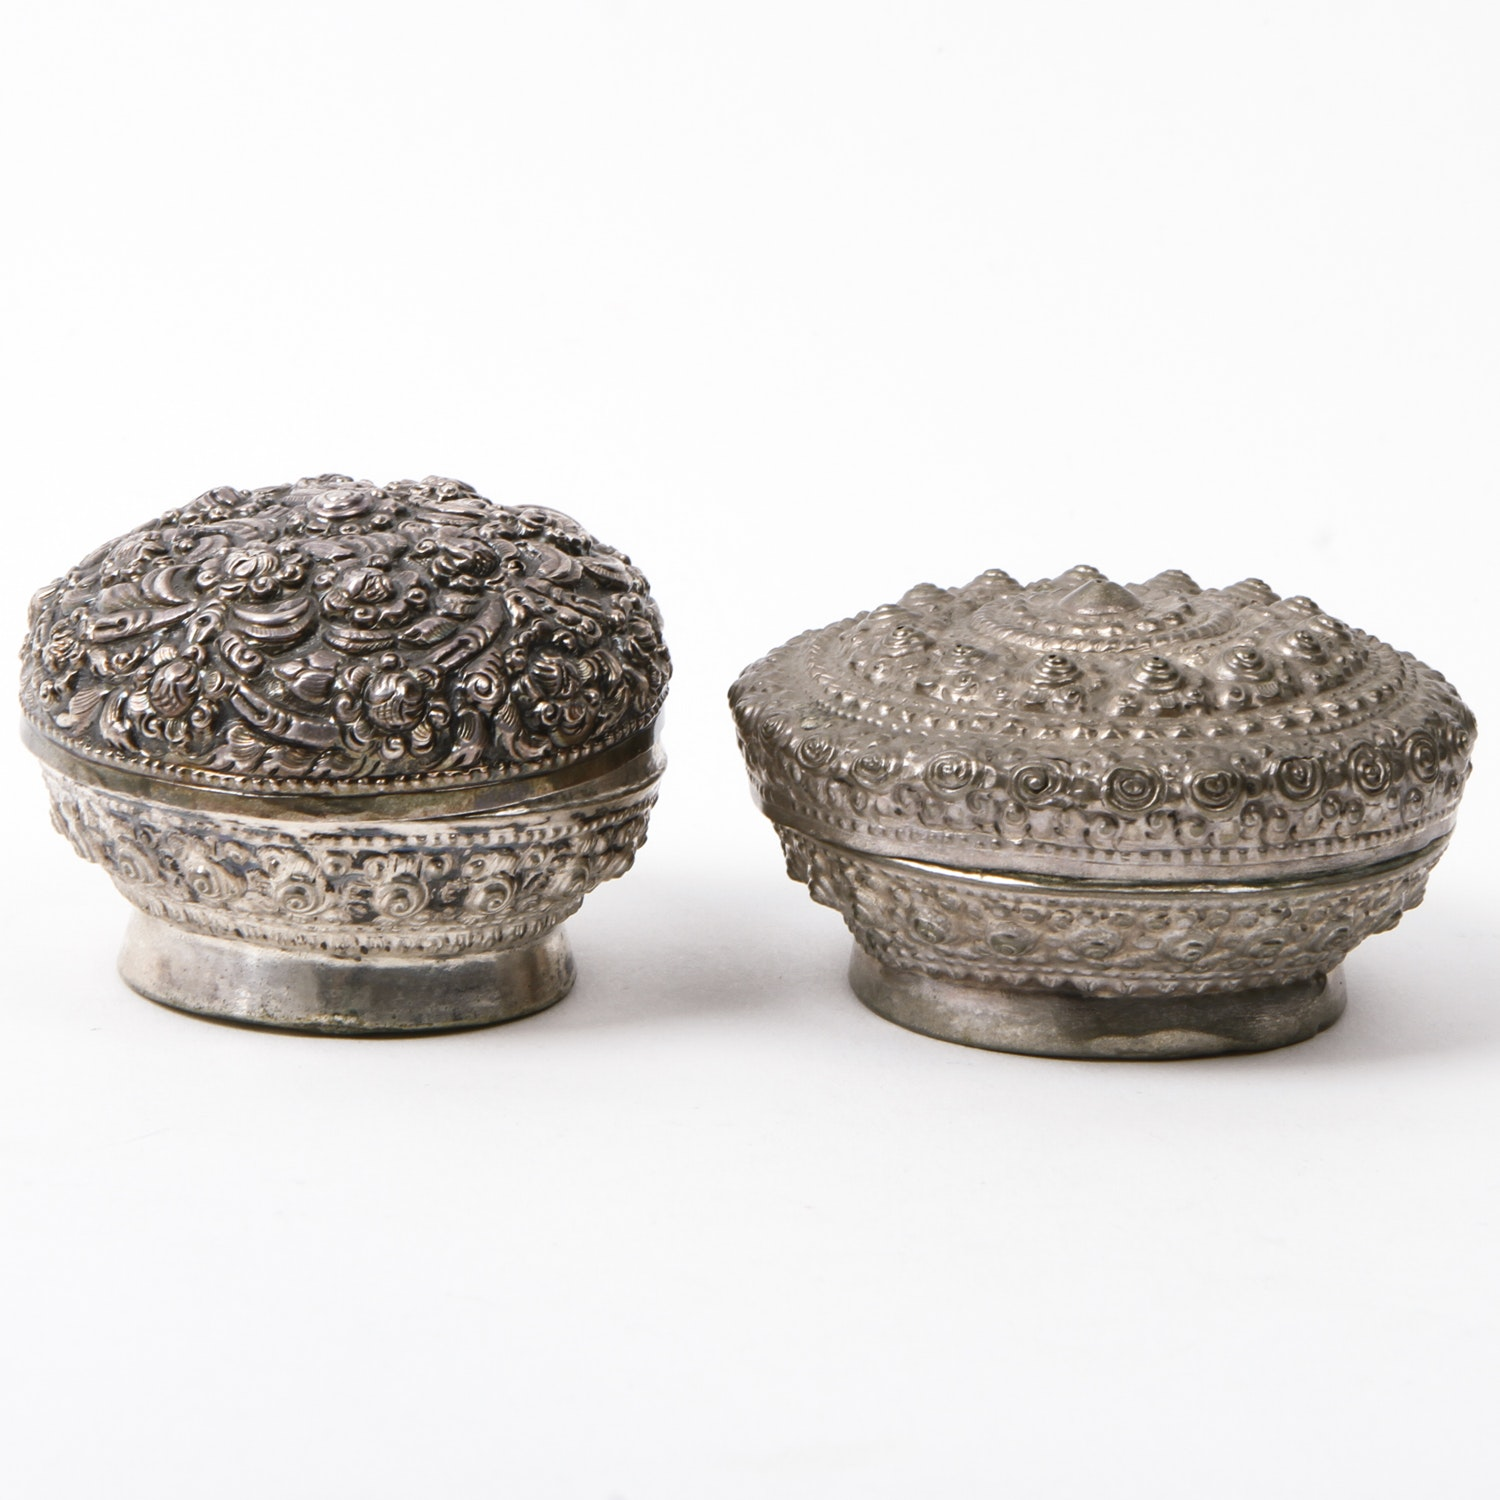 Two Antique Repoussé Sterling Silver Trinket Boxes